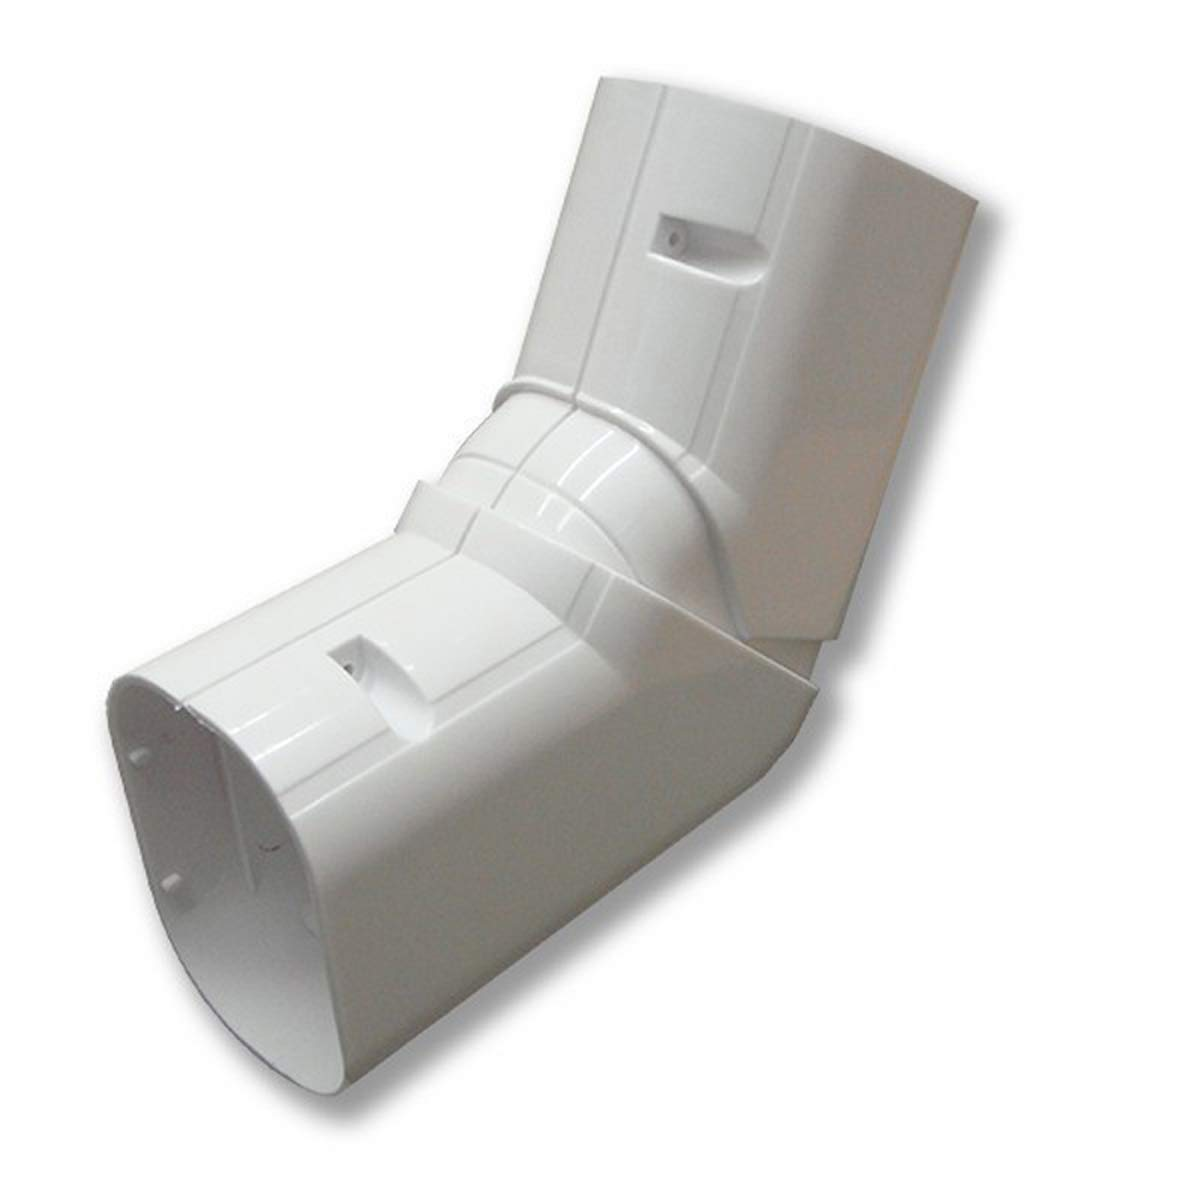 DuctlessAire 4'' line set cover 120-90 Degree horizontal adjustable elbow